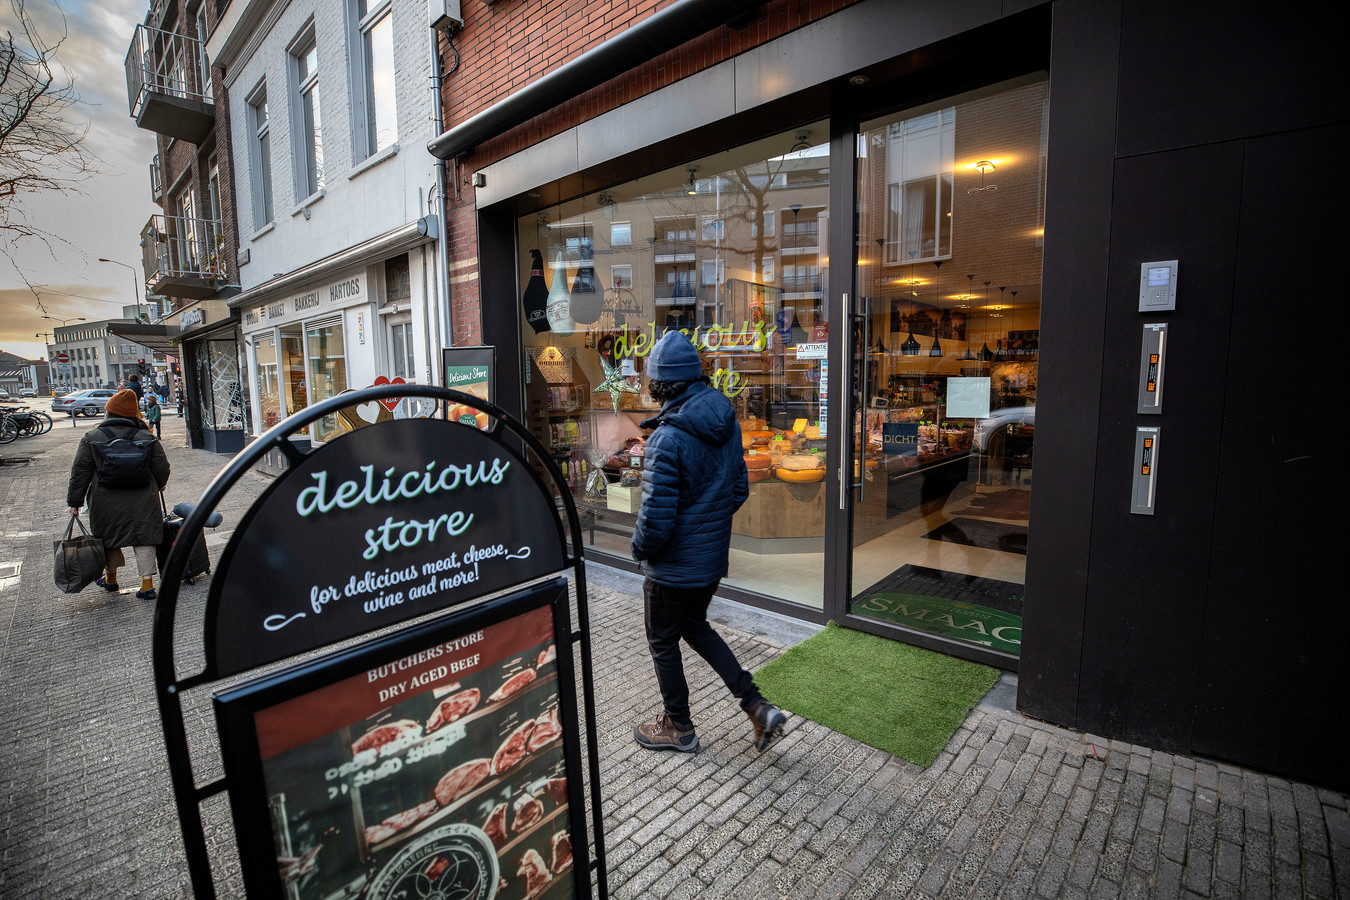 Delicious Store in Eindhoven